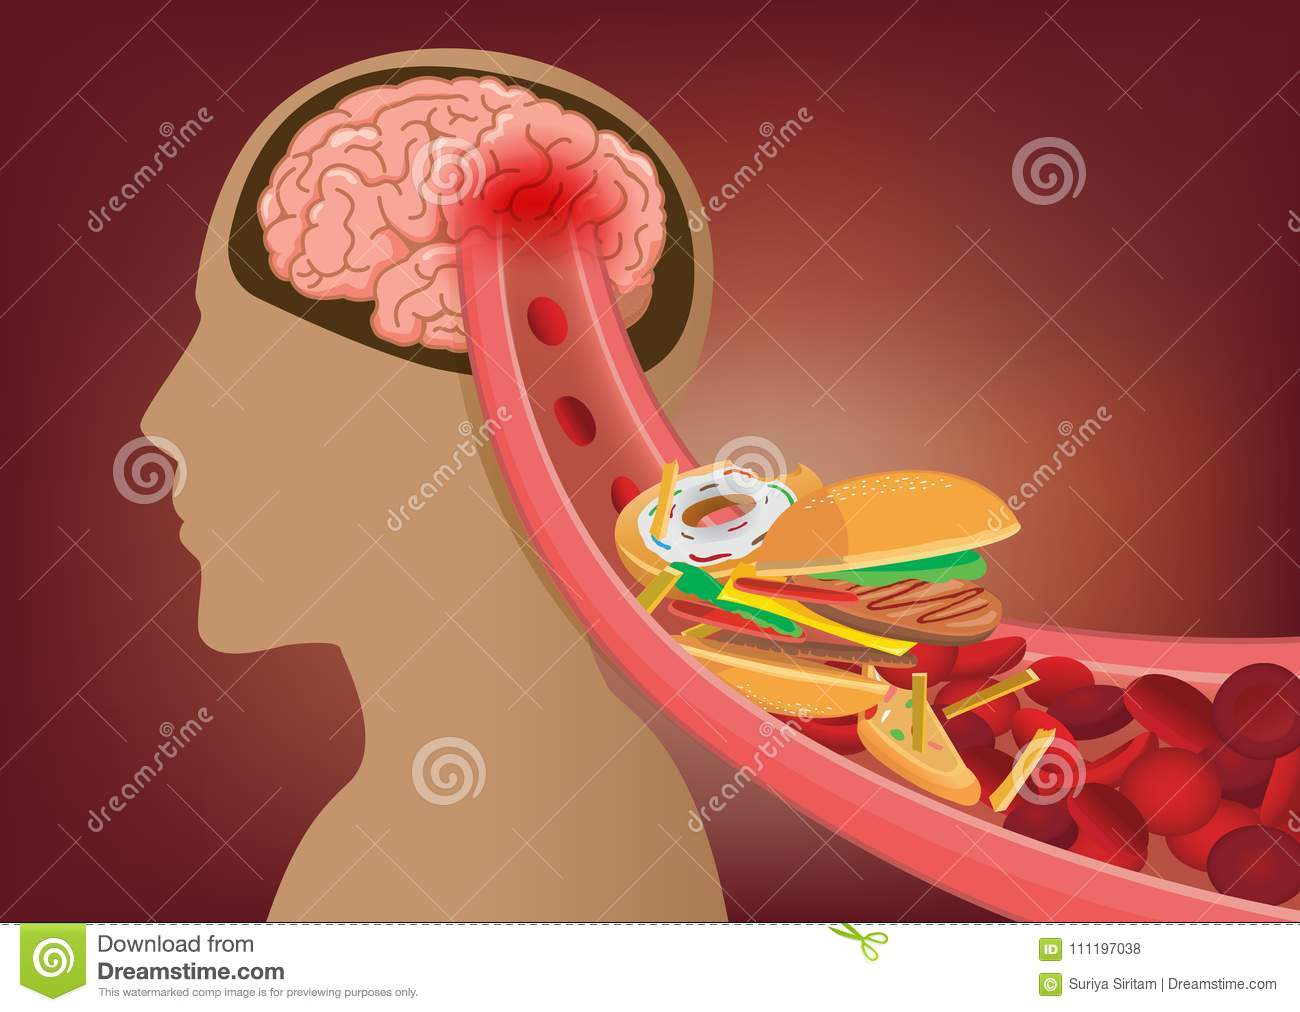 Blood can`t flow into human brain because fast food made clogged arteries.